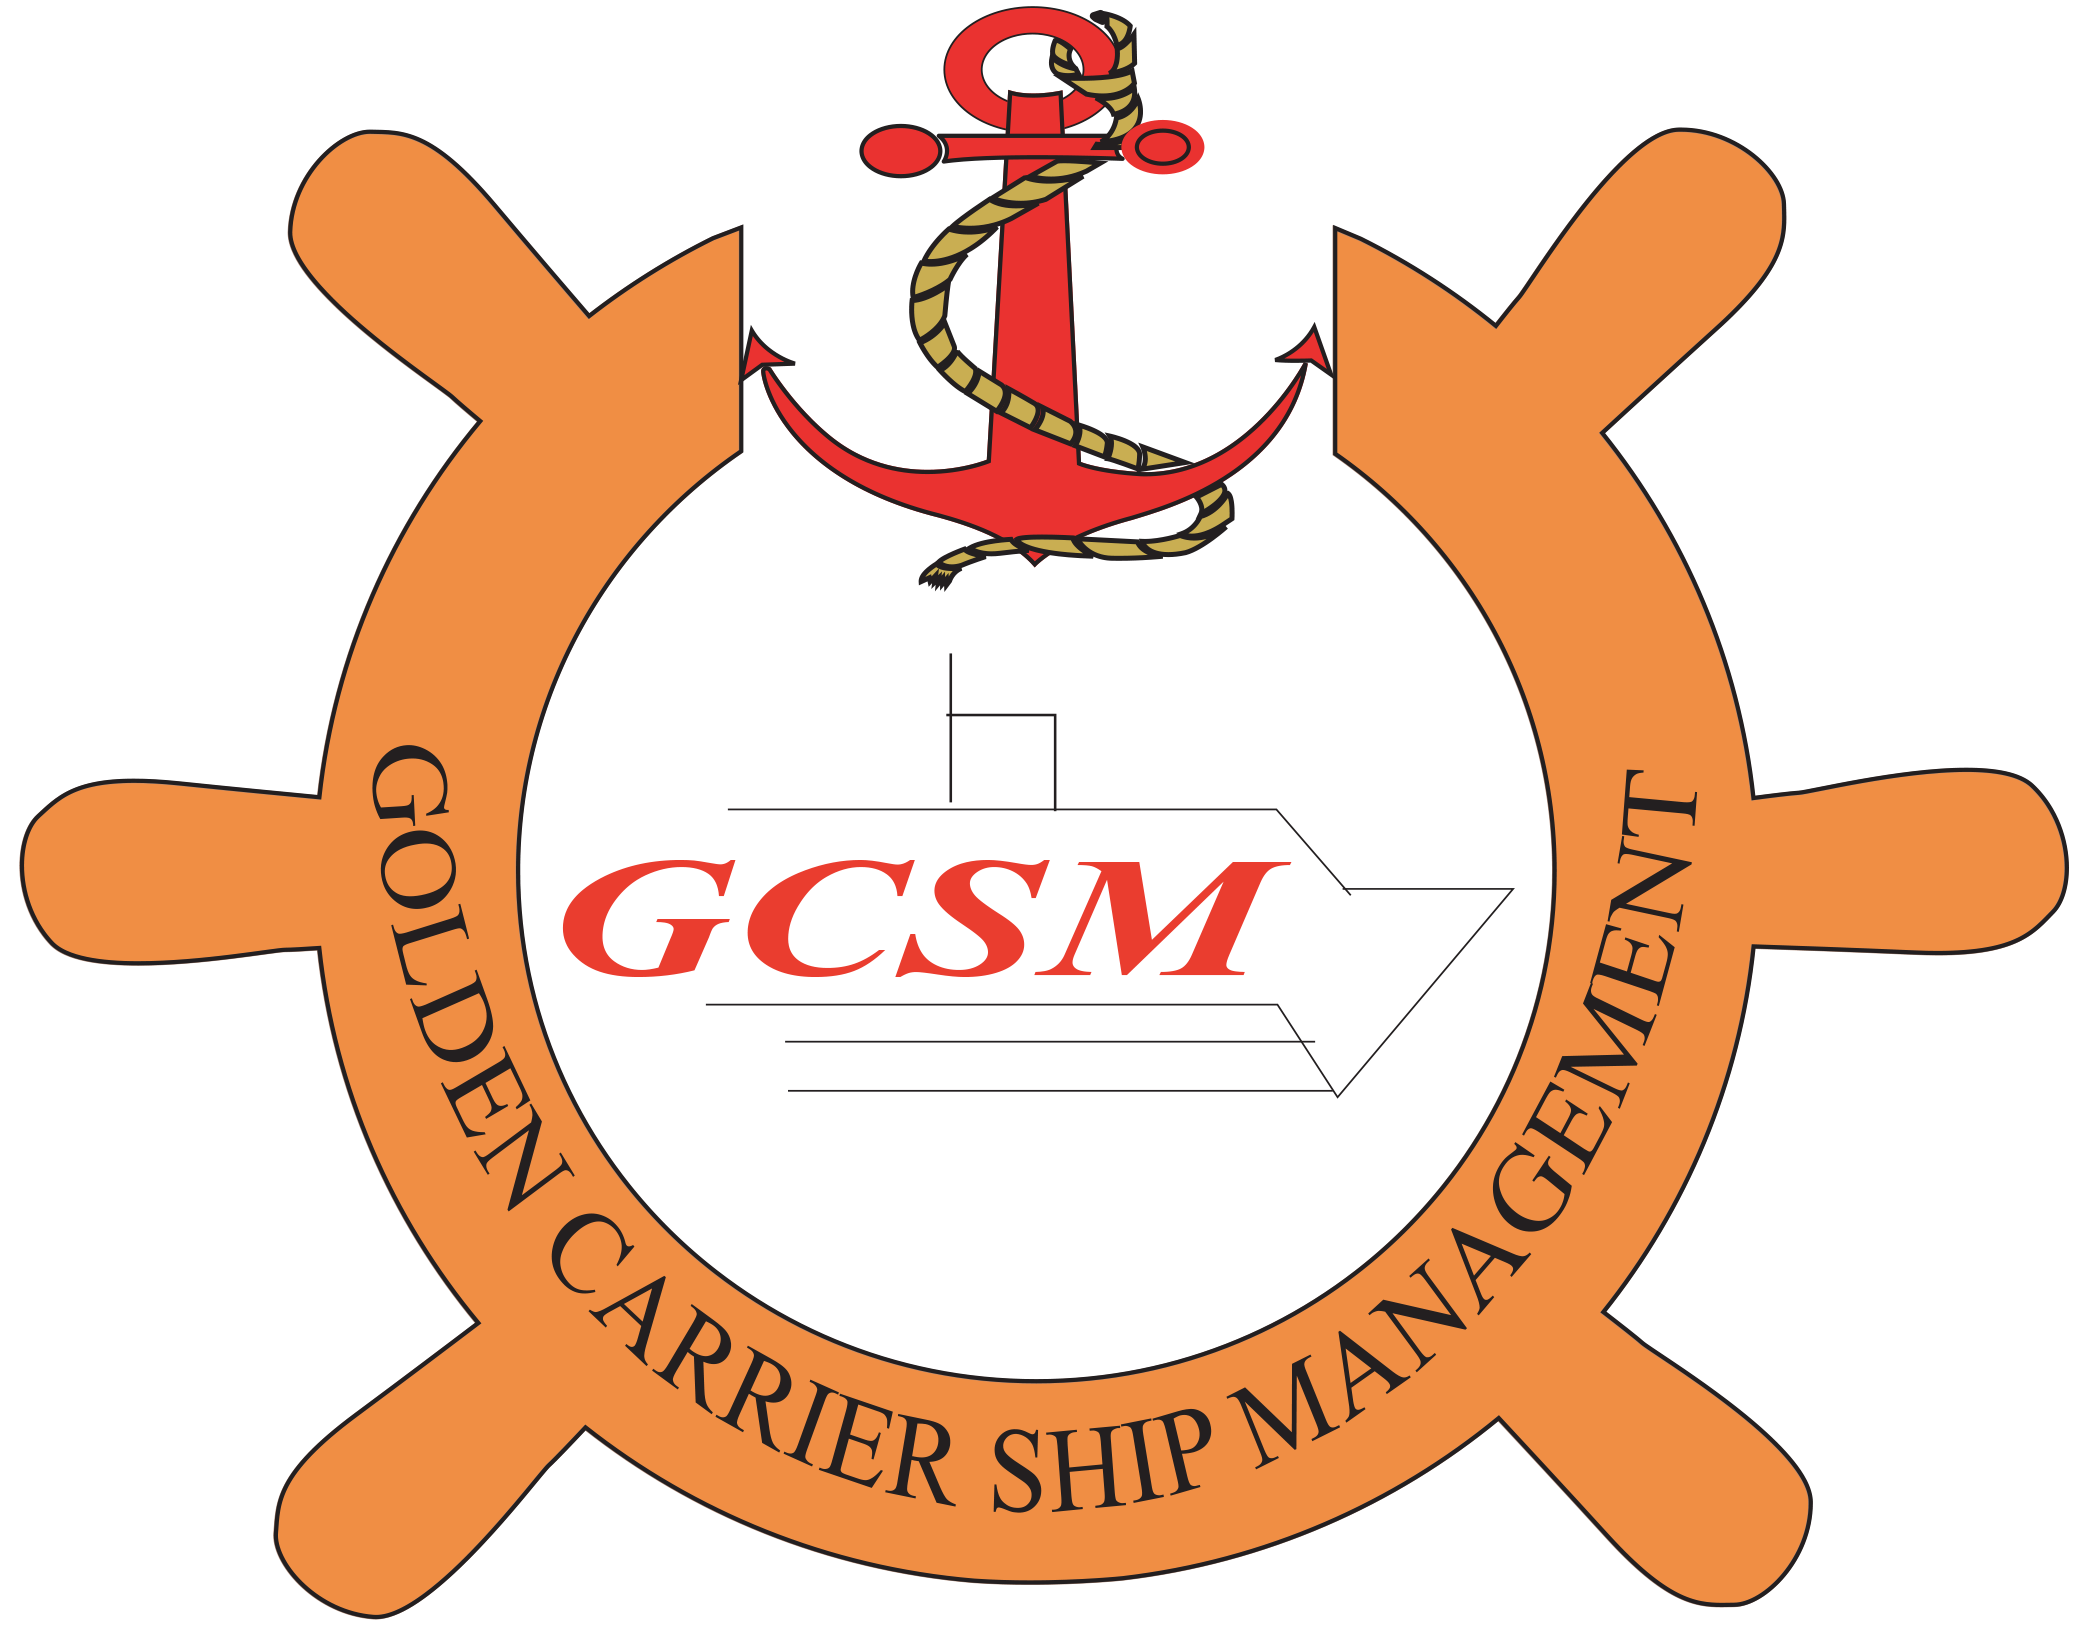 Golden Career Ship Management